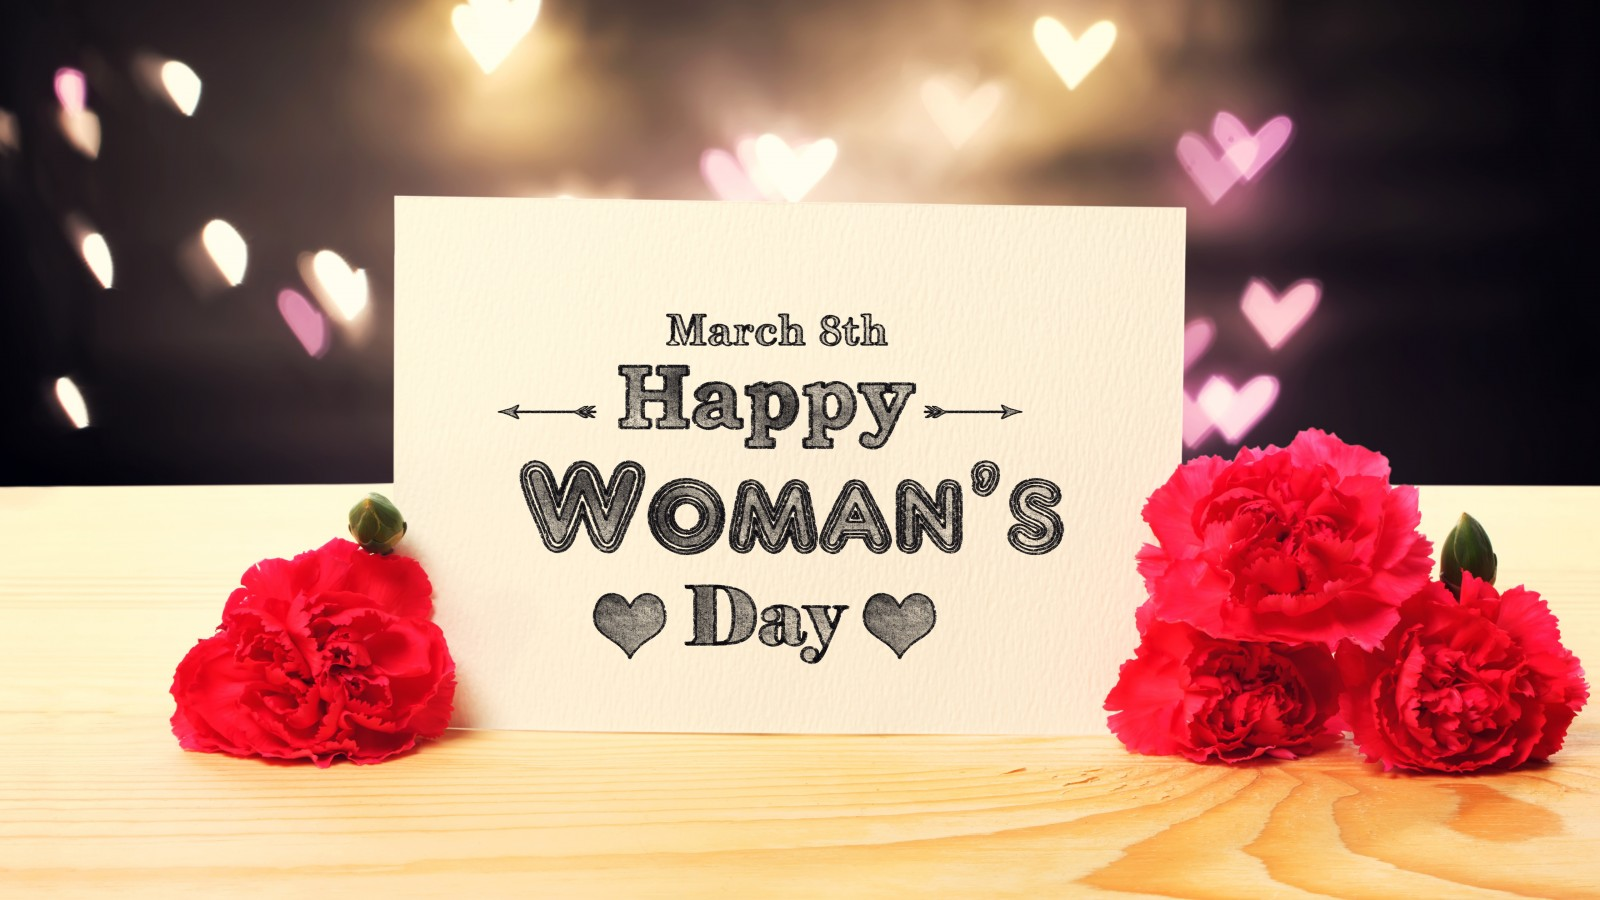 Free 3d Fantasy Desktop Wallpaper Happy Womans Day 4k Wallpapers Hd Wallpapers Id 19856